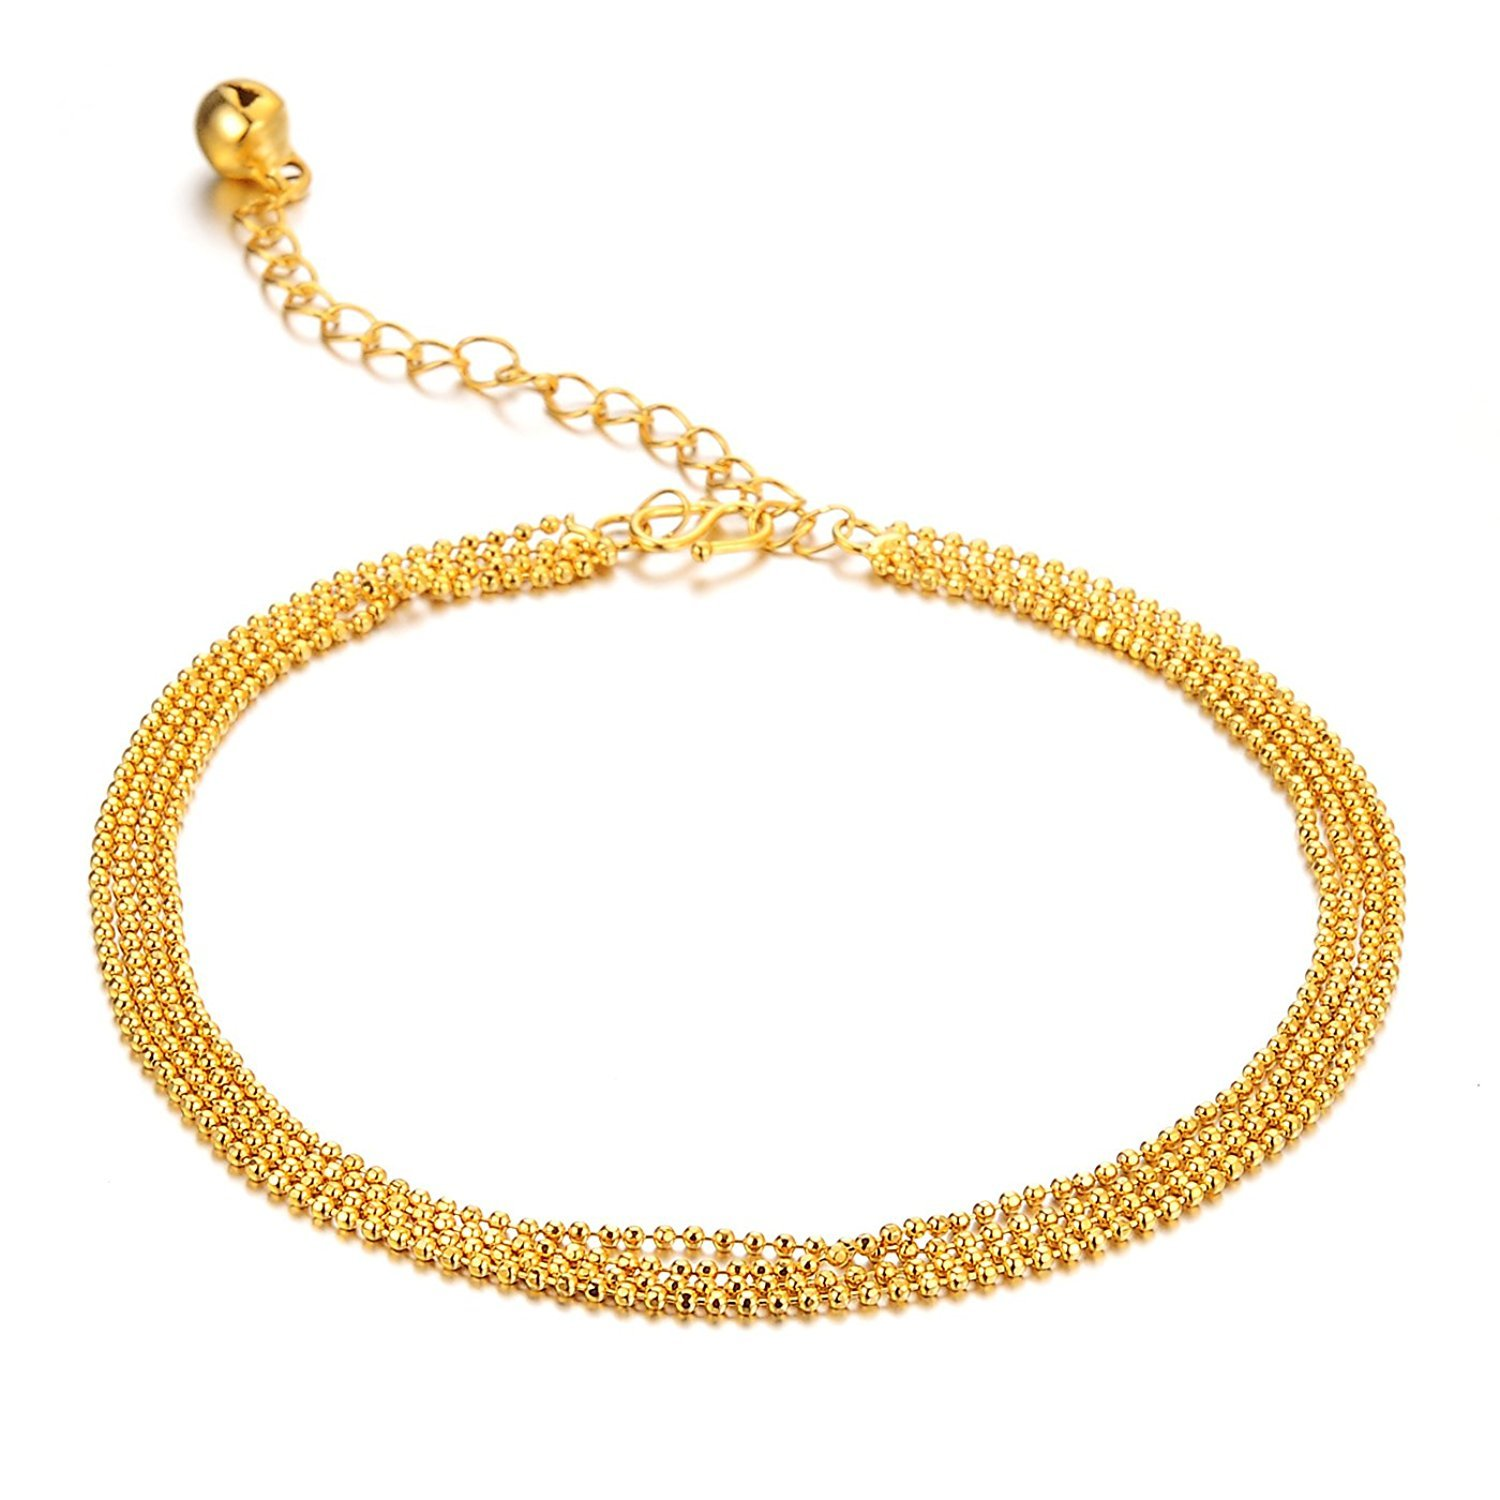 JAJAFOOK Women's Anklet Bracelet 18k Gold Plated 4 Lucky Beads and Bells Pendants Foot Chain